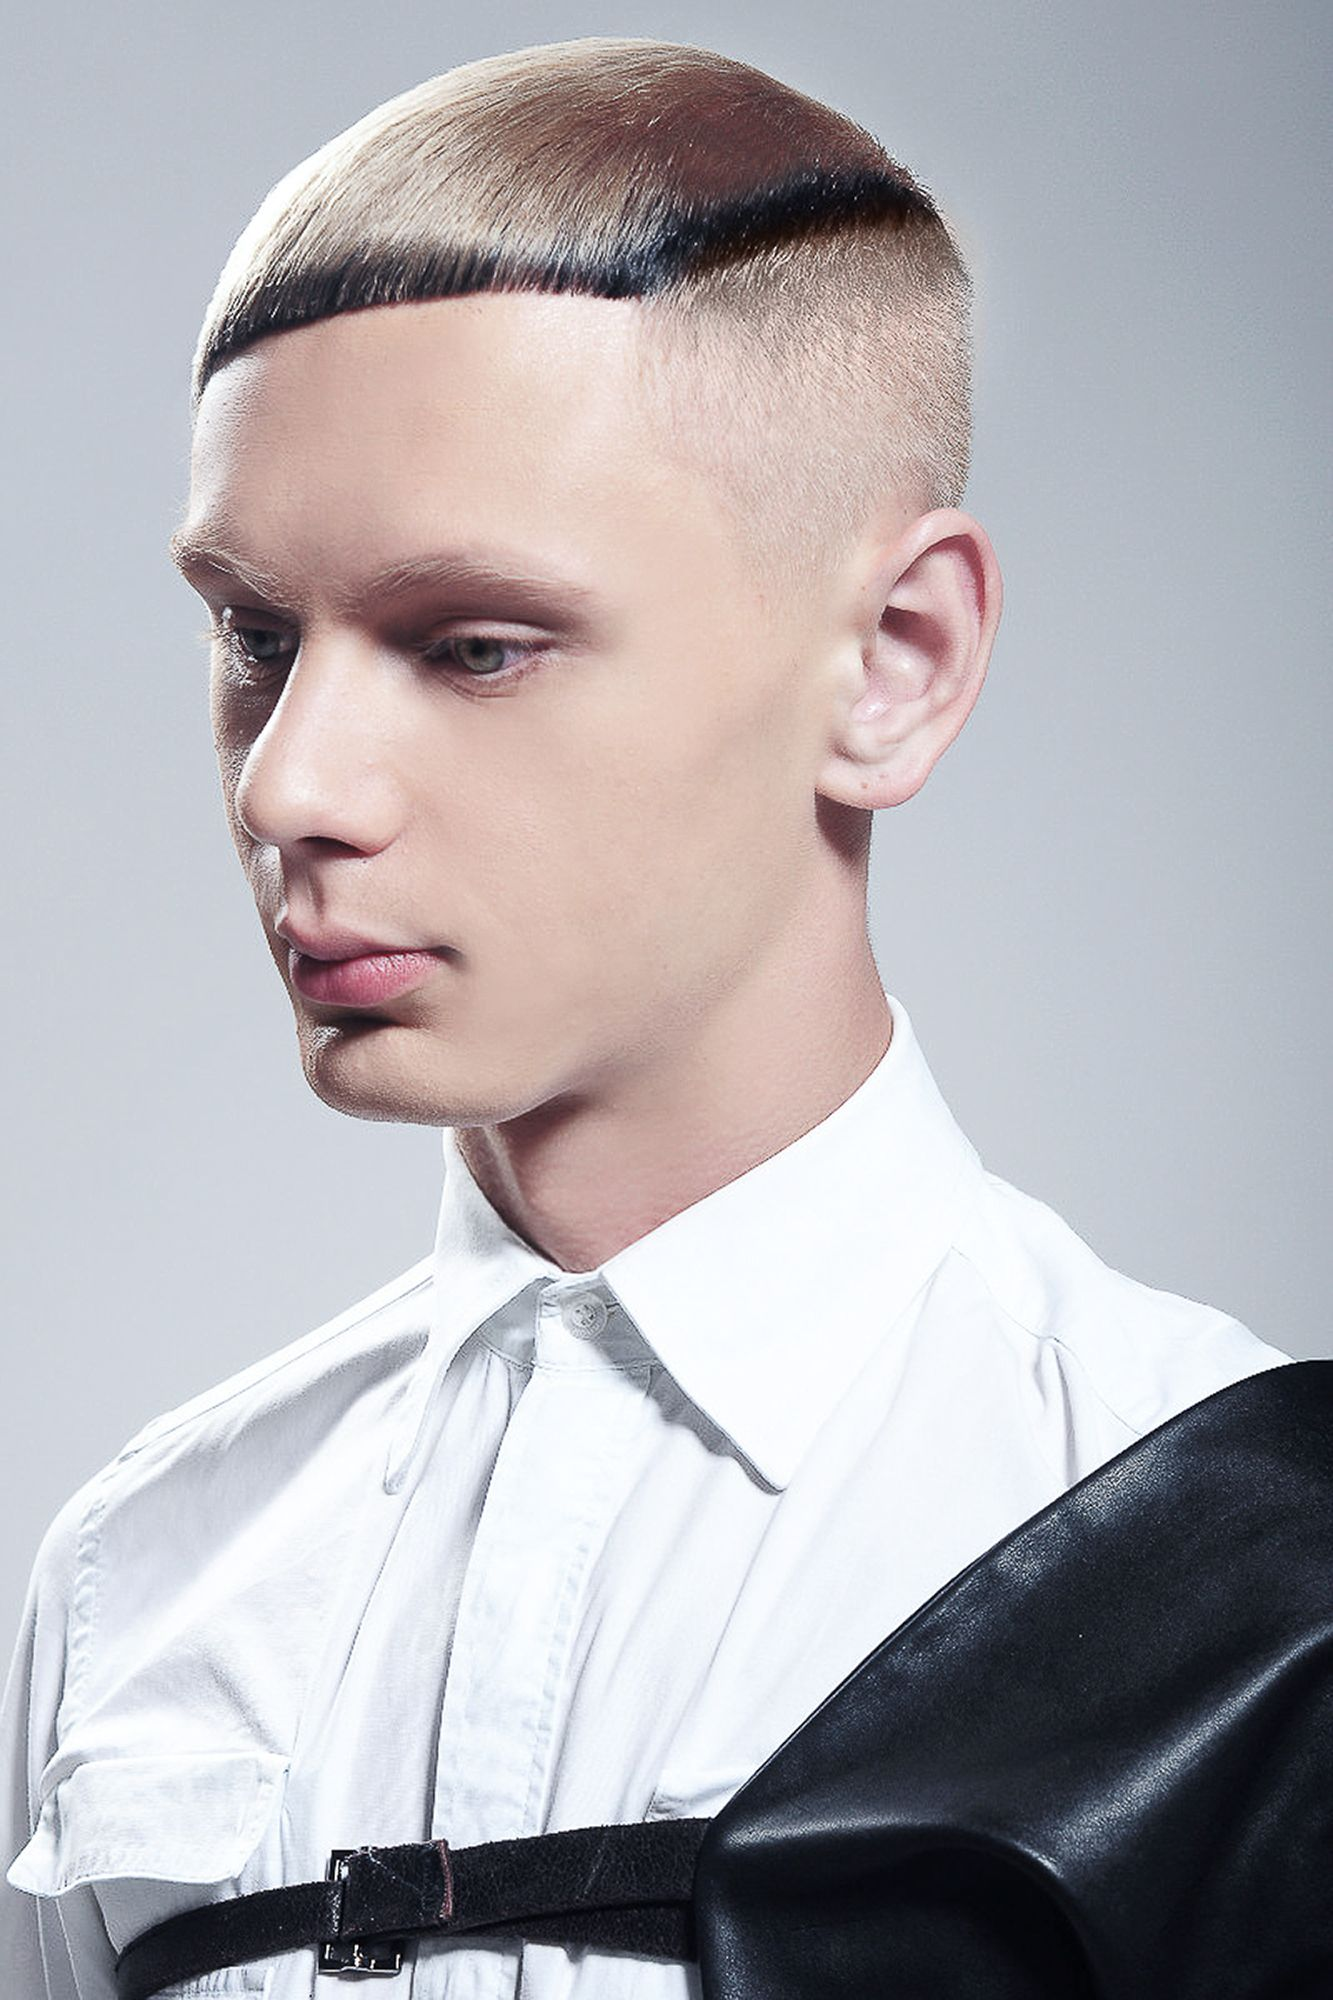 Men s disconnected undercut from schwarzkopf professional - Sp Men Competition Entry From Russia Salon Natanya Kovleva Look Modern Sophistication